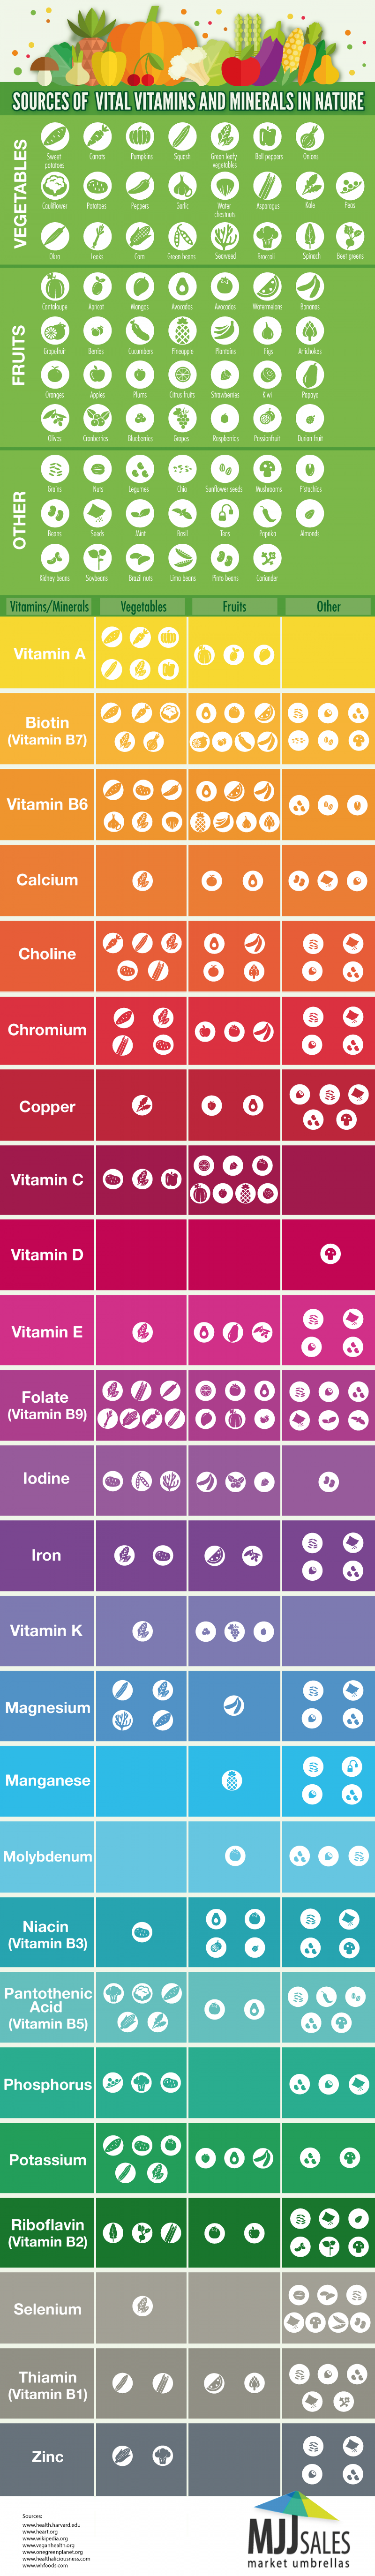 Sources of Vital Vitamins and Minerals in Nature Infographic